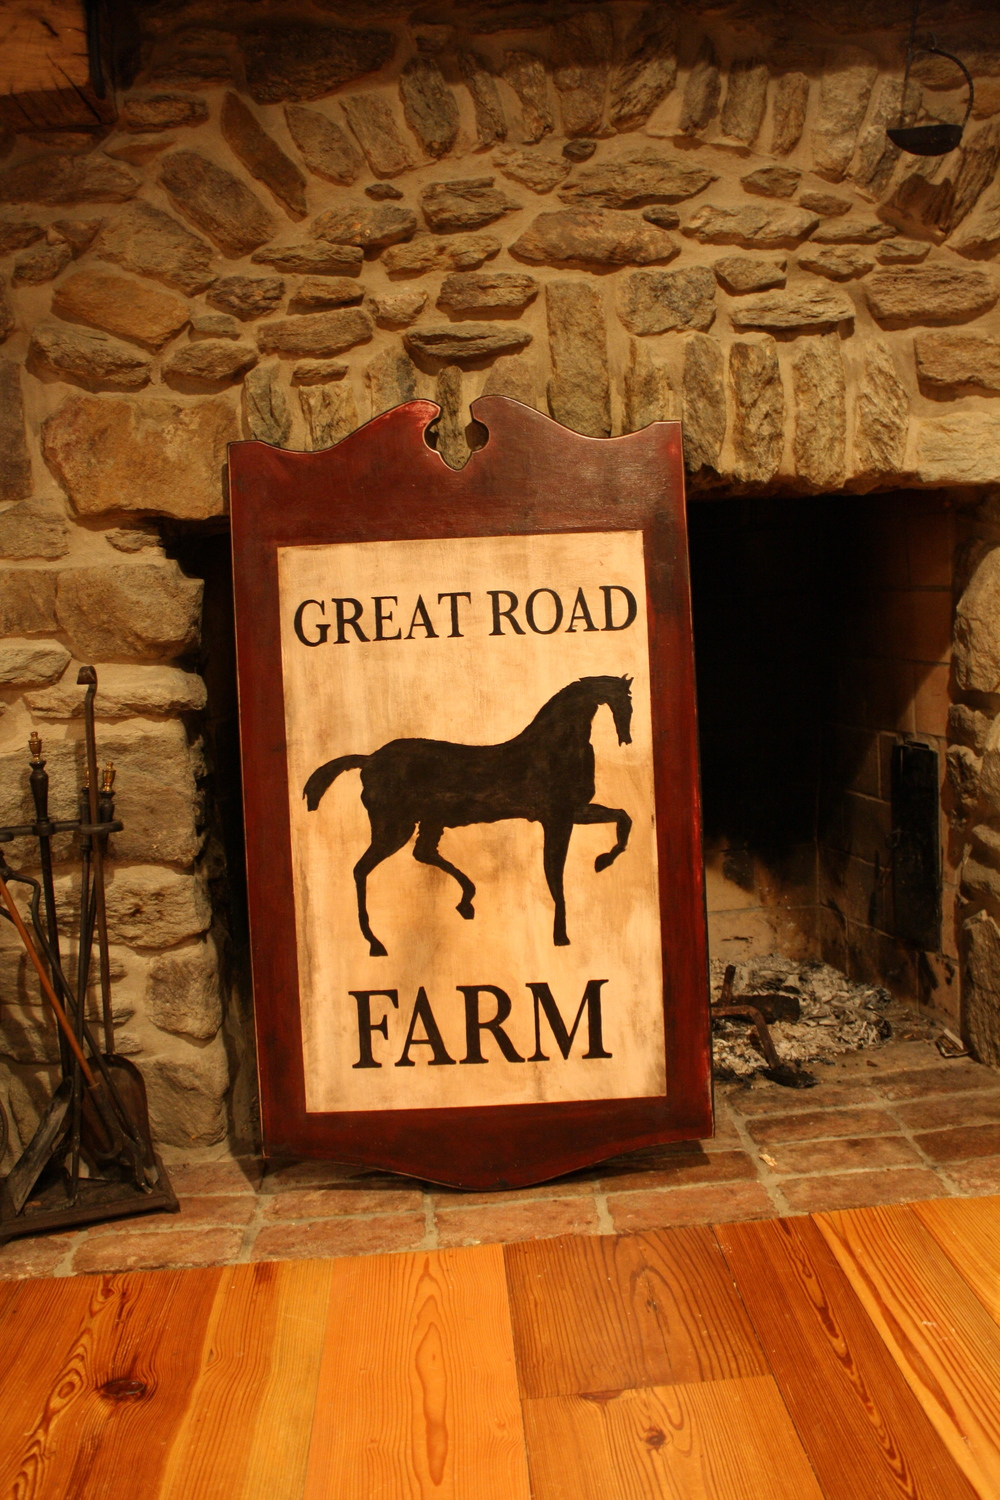 Great Road Farm